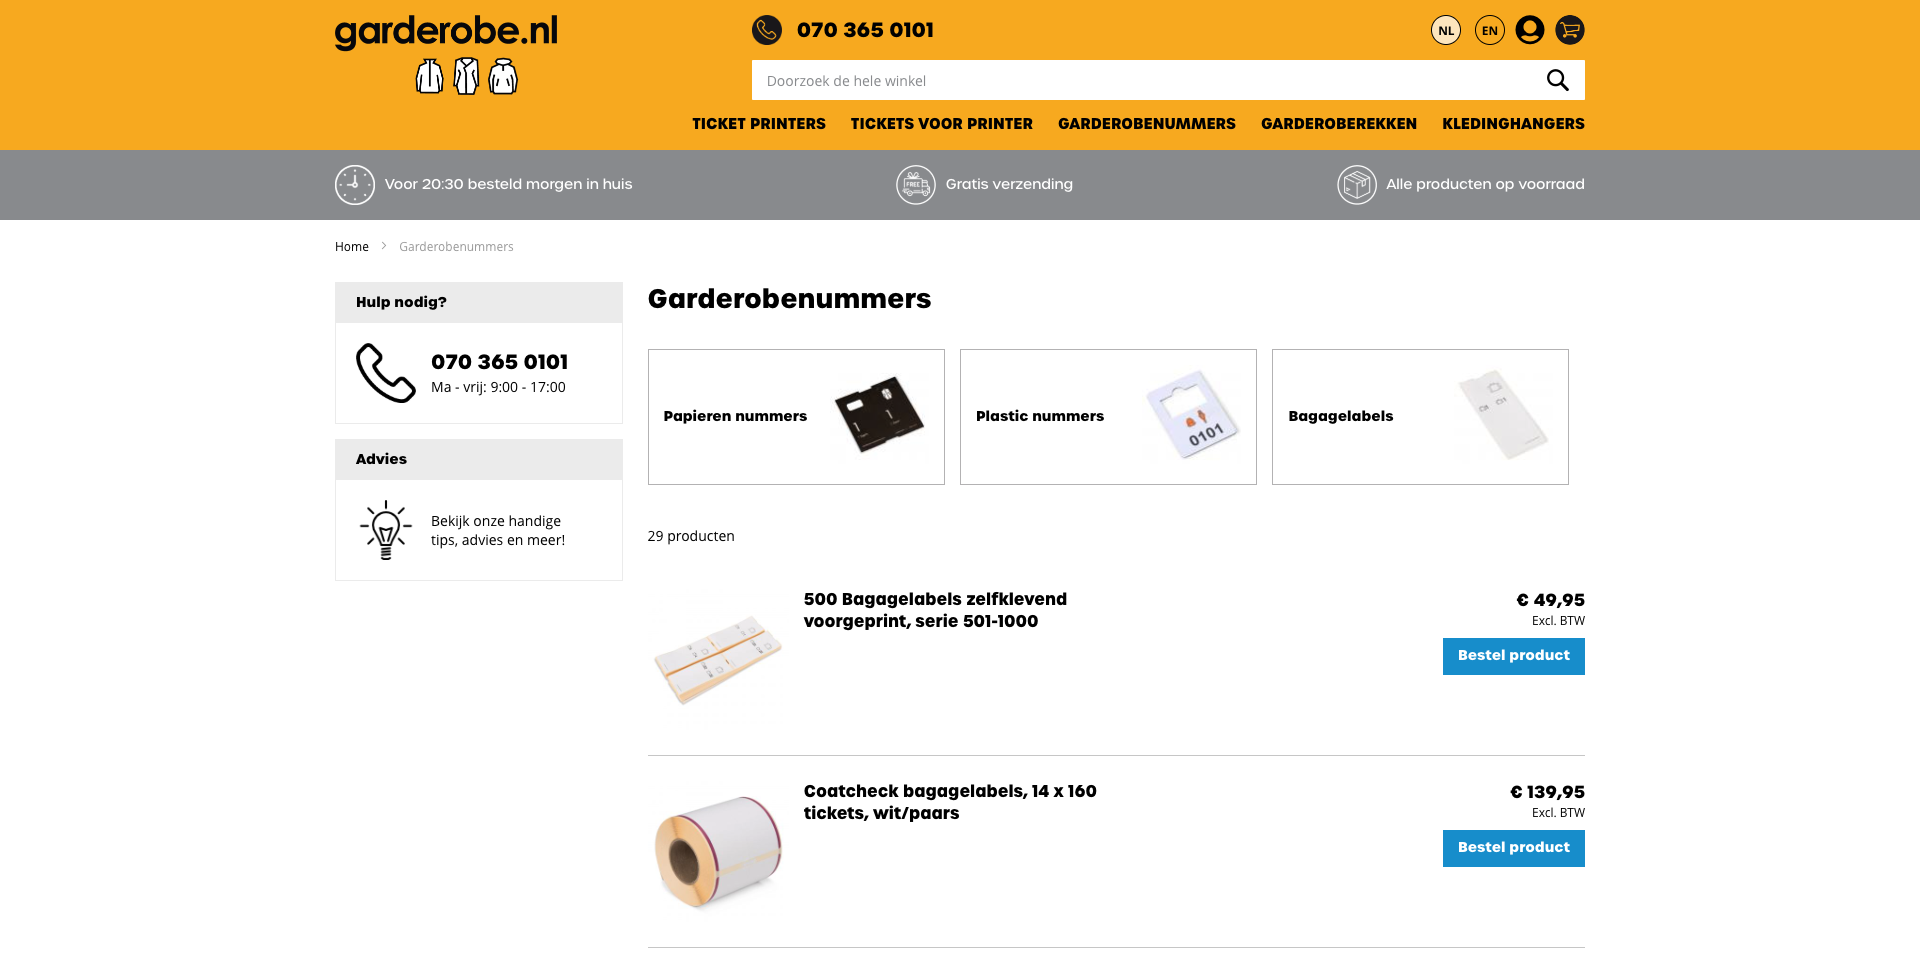 Categoriepagina garderobe.nl